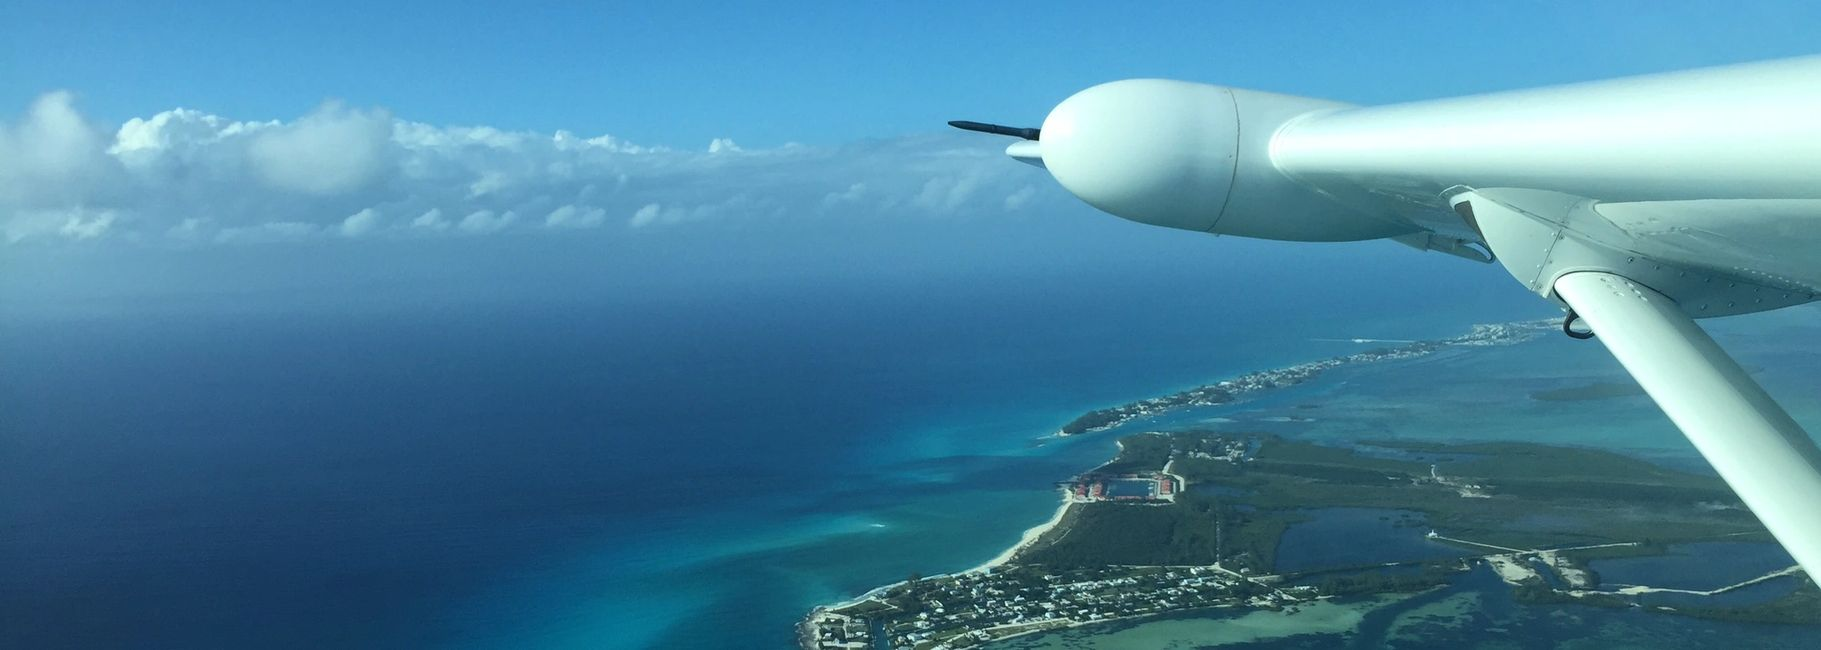 Bahamas Airports, Islands, information. JetsetPrivate Air Charter Flight Destinations in Bahamas